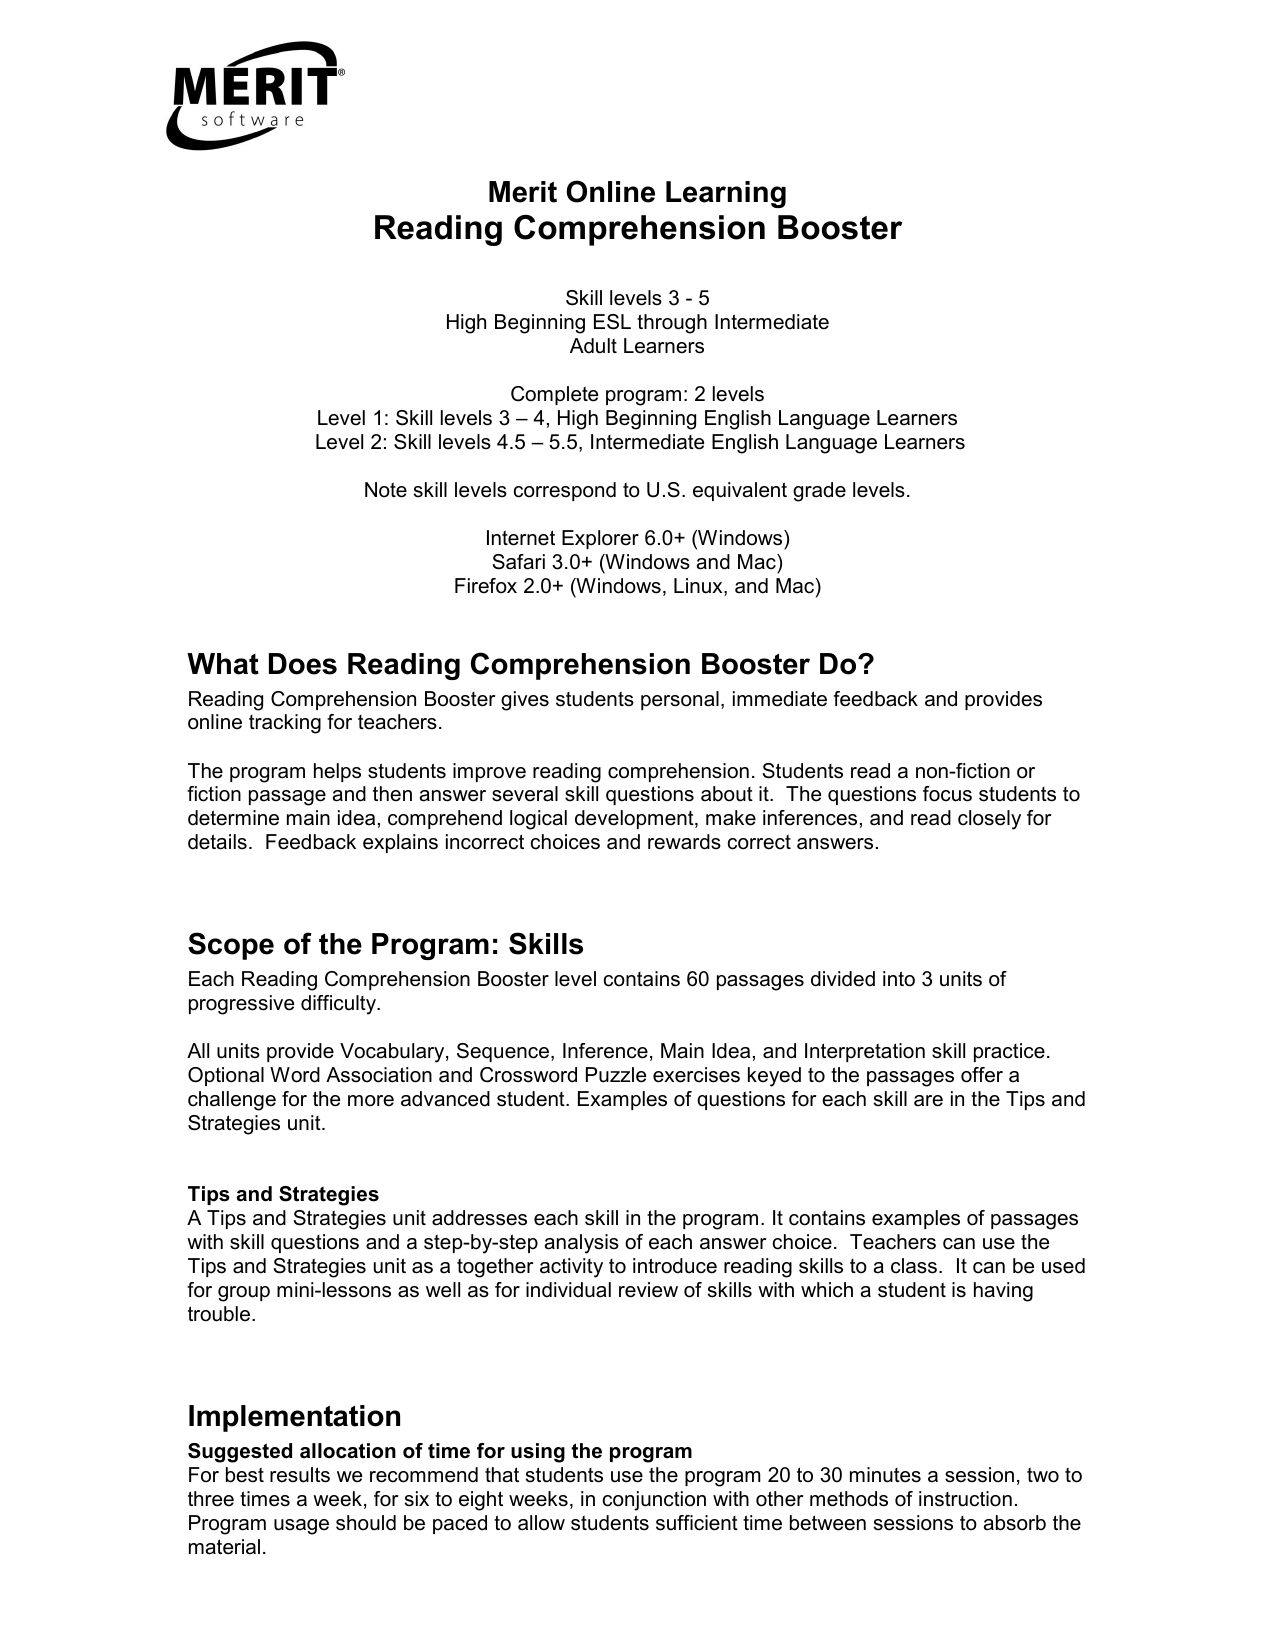 - Reading Comprehension Booster